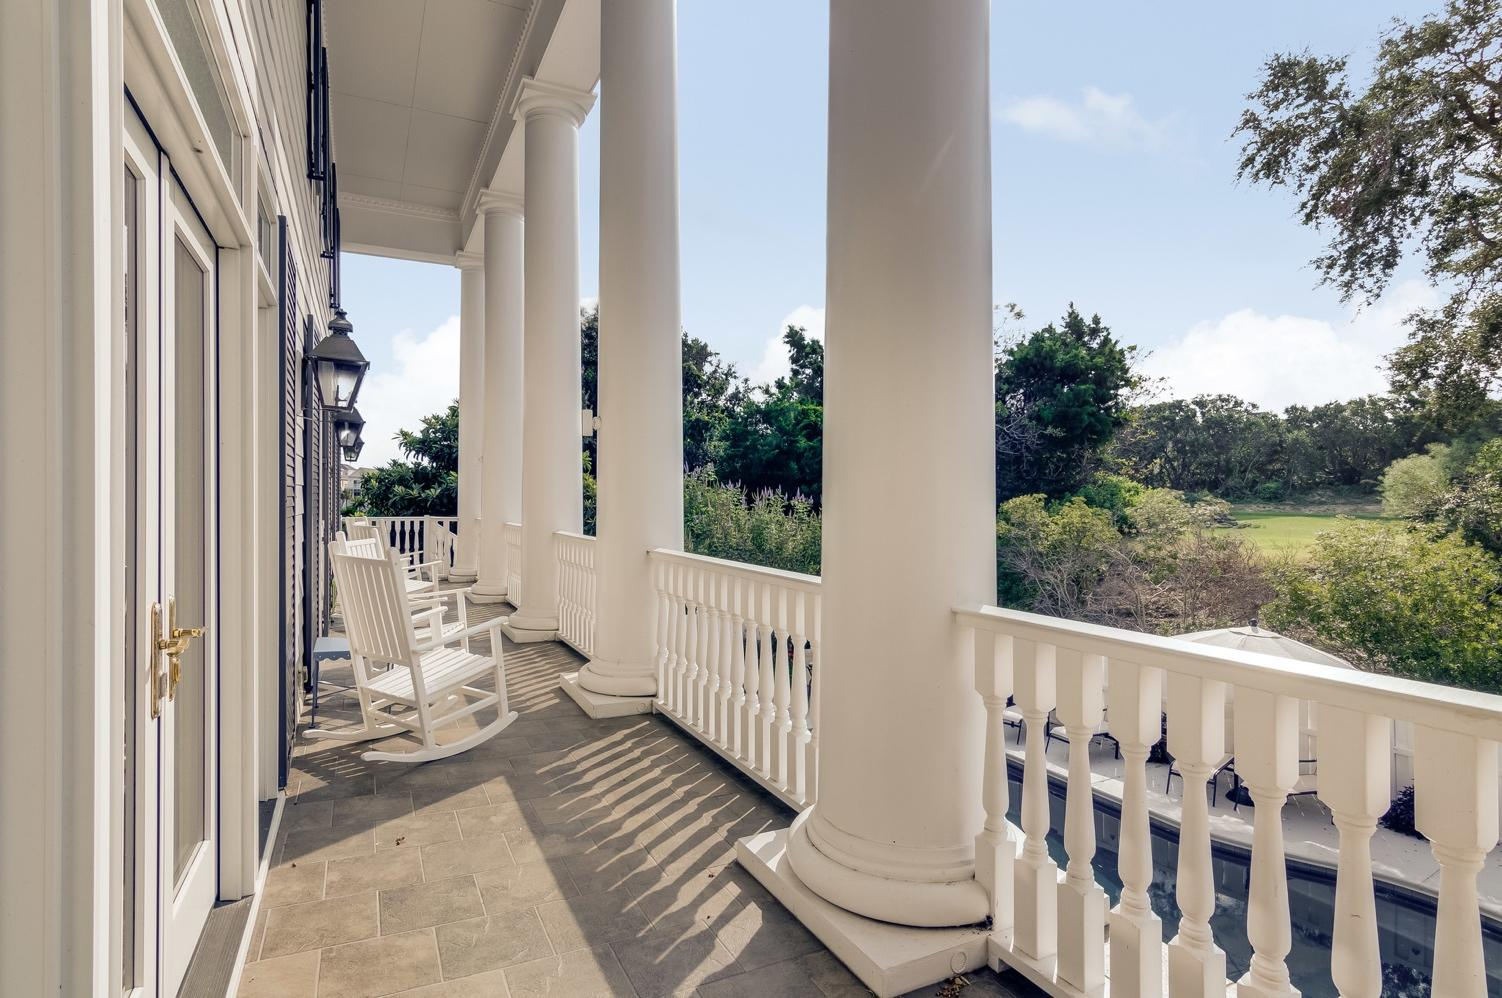 Wild Dunes Homes For Sale - 1 Ocean Point, Isle of Palms, SC - 21